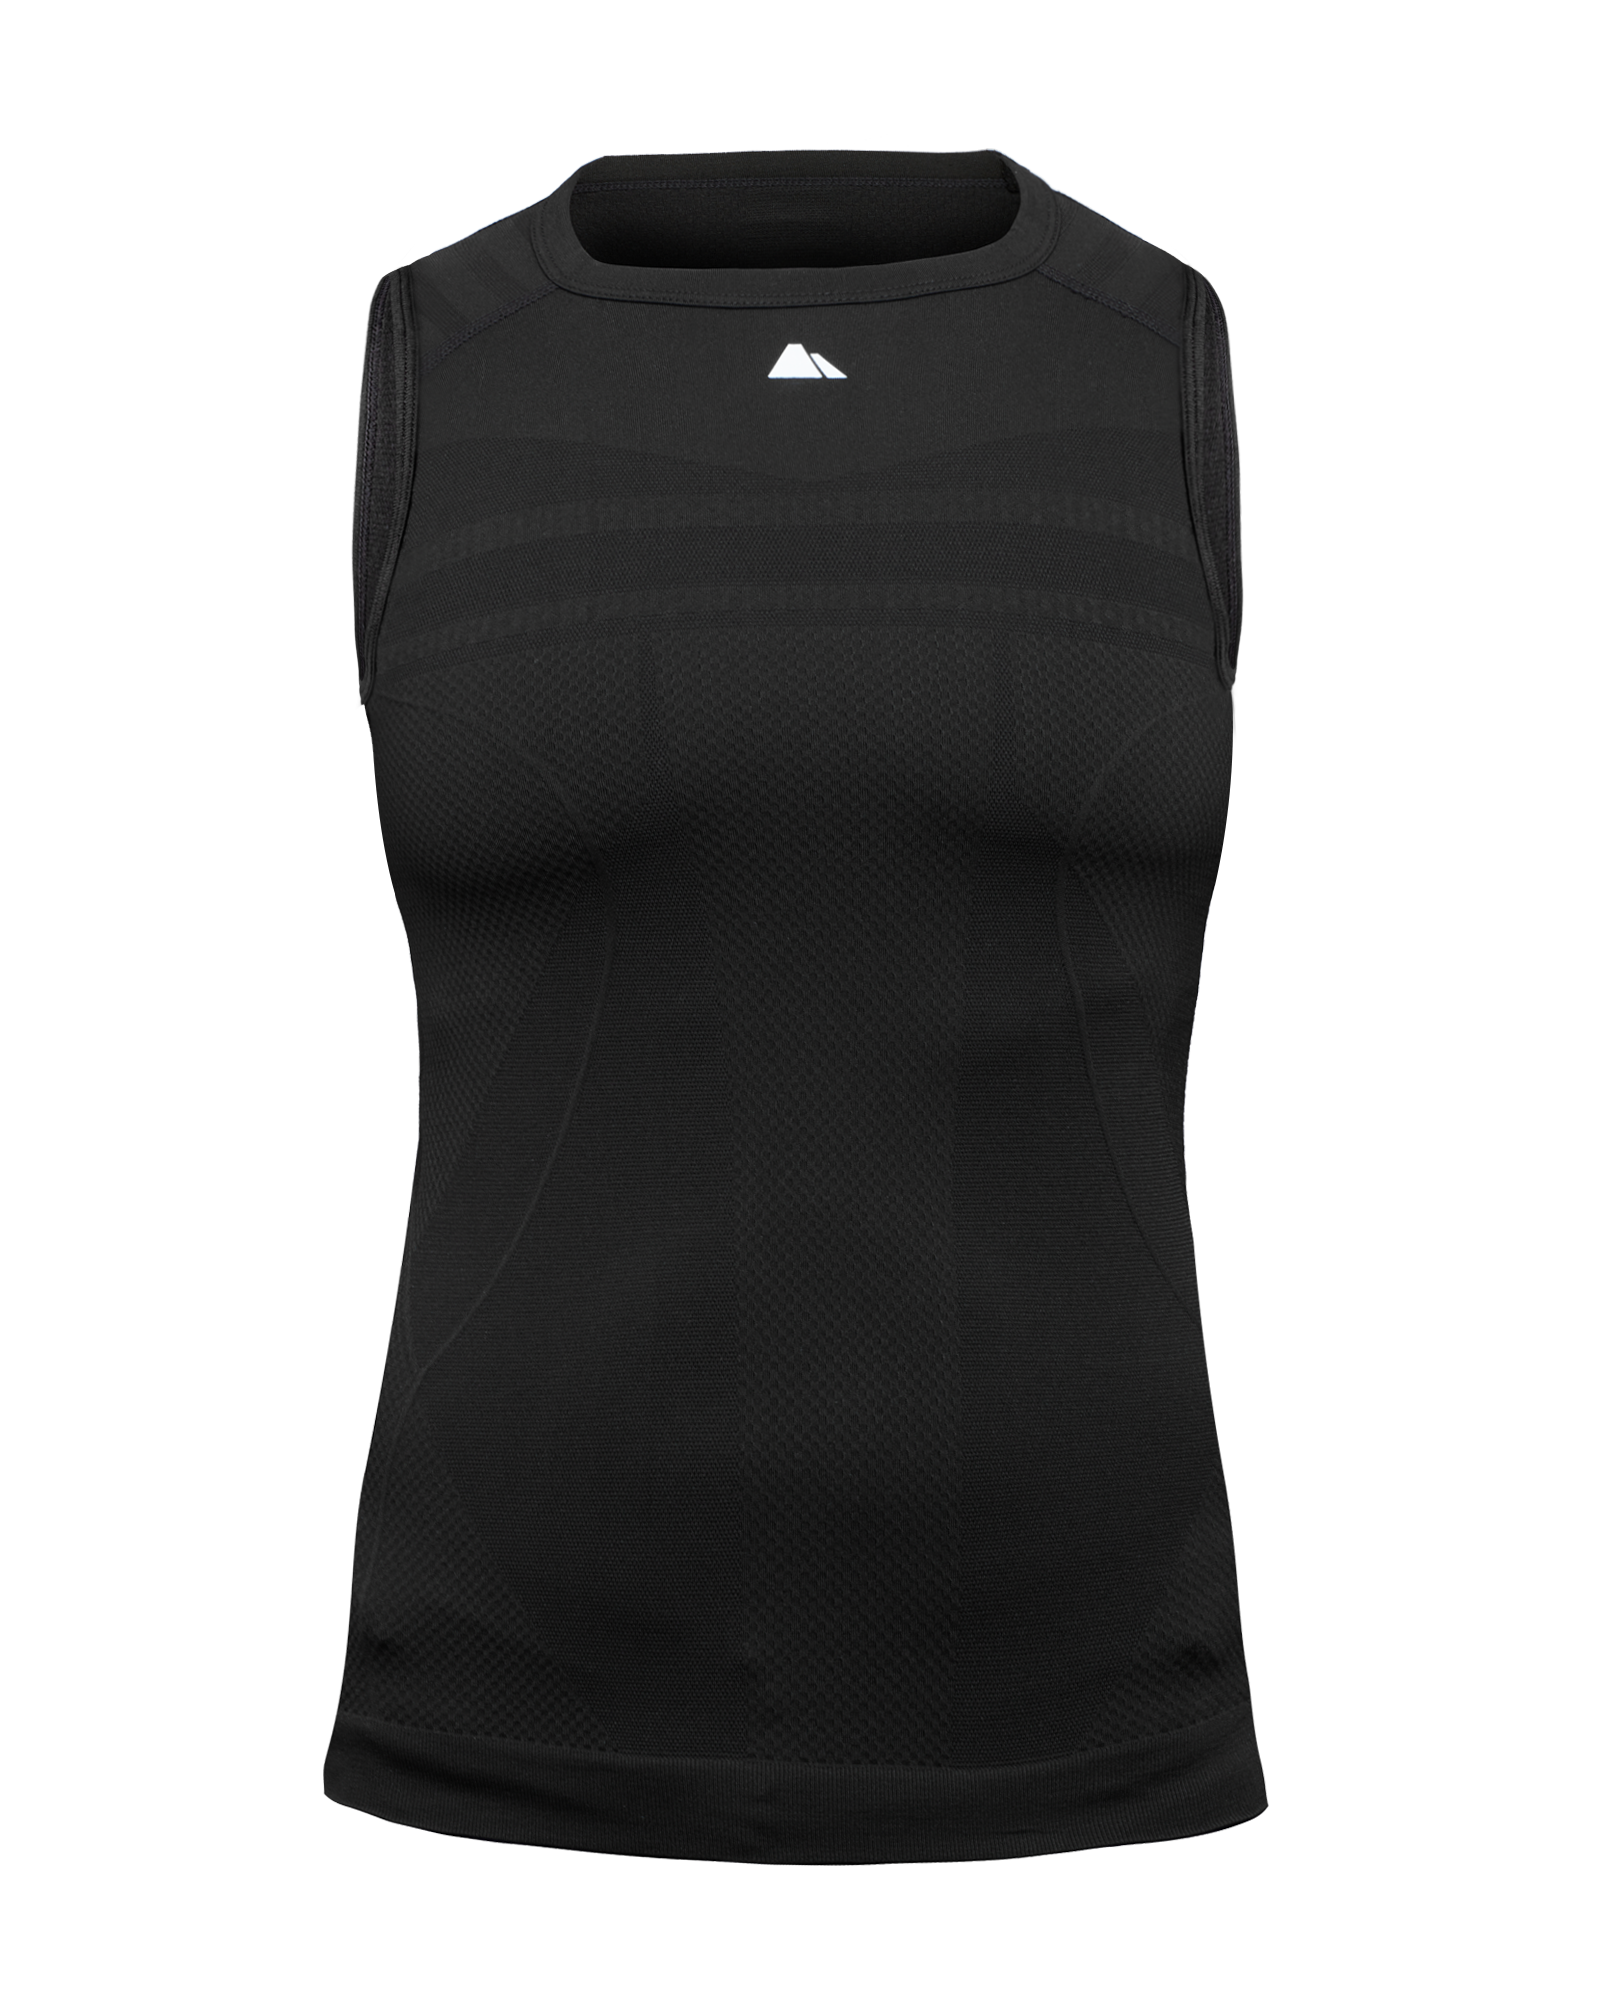 Canyon WMN Signature Pro Base Layer | Undertøj og svedtøj